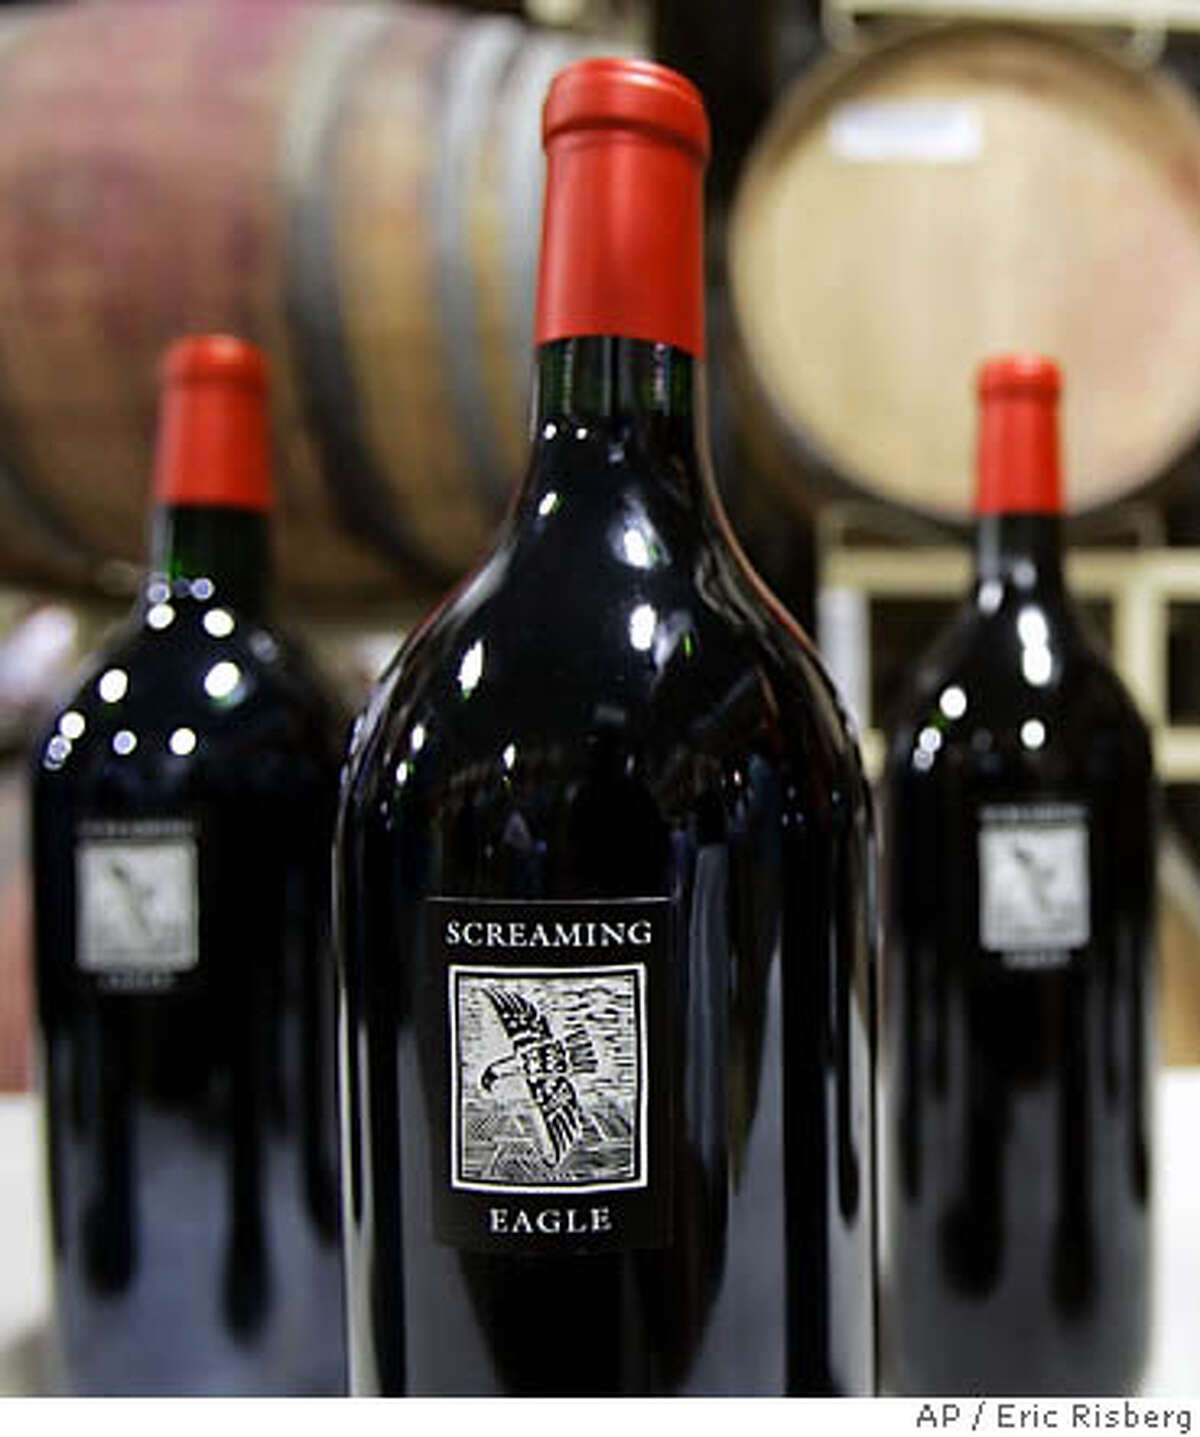 Three magnums, part of a vertical lot of 12 bottles of Screaming Eagle Cabernet Sauvignon wine are shown on display during the Napa Valley wine auction in St. Helena, Calif., Friday, June 2, 2006. The three-day event, featuring a barrel auction, an online auction and the centerpiece live auction Saturday night, raised $8.4 million in all, organizers said. (AP Photo/Eric Risberg) Ran on: 06-08-2006 Joy Craft (far right) paid $1.05 million at Auction Napa Valley for a lot arranged by Shari and Garen Staglin (center). Ryan Seacrest (left) emceed. Another lot included a Screaming Eagle vertical. Ran on: 06-08-2006